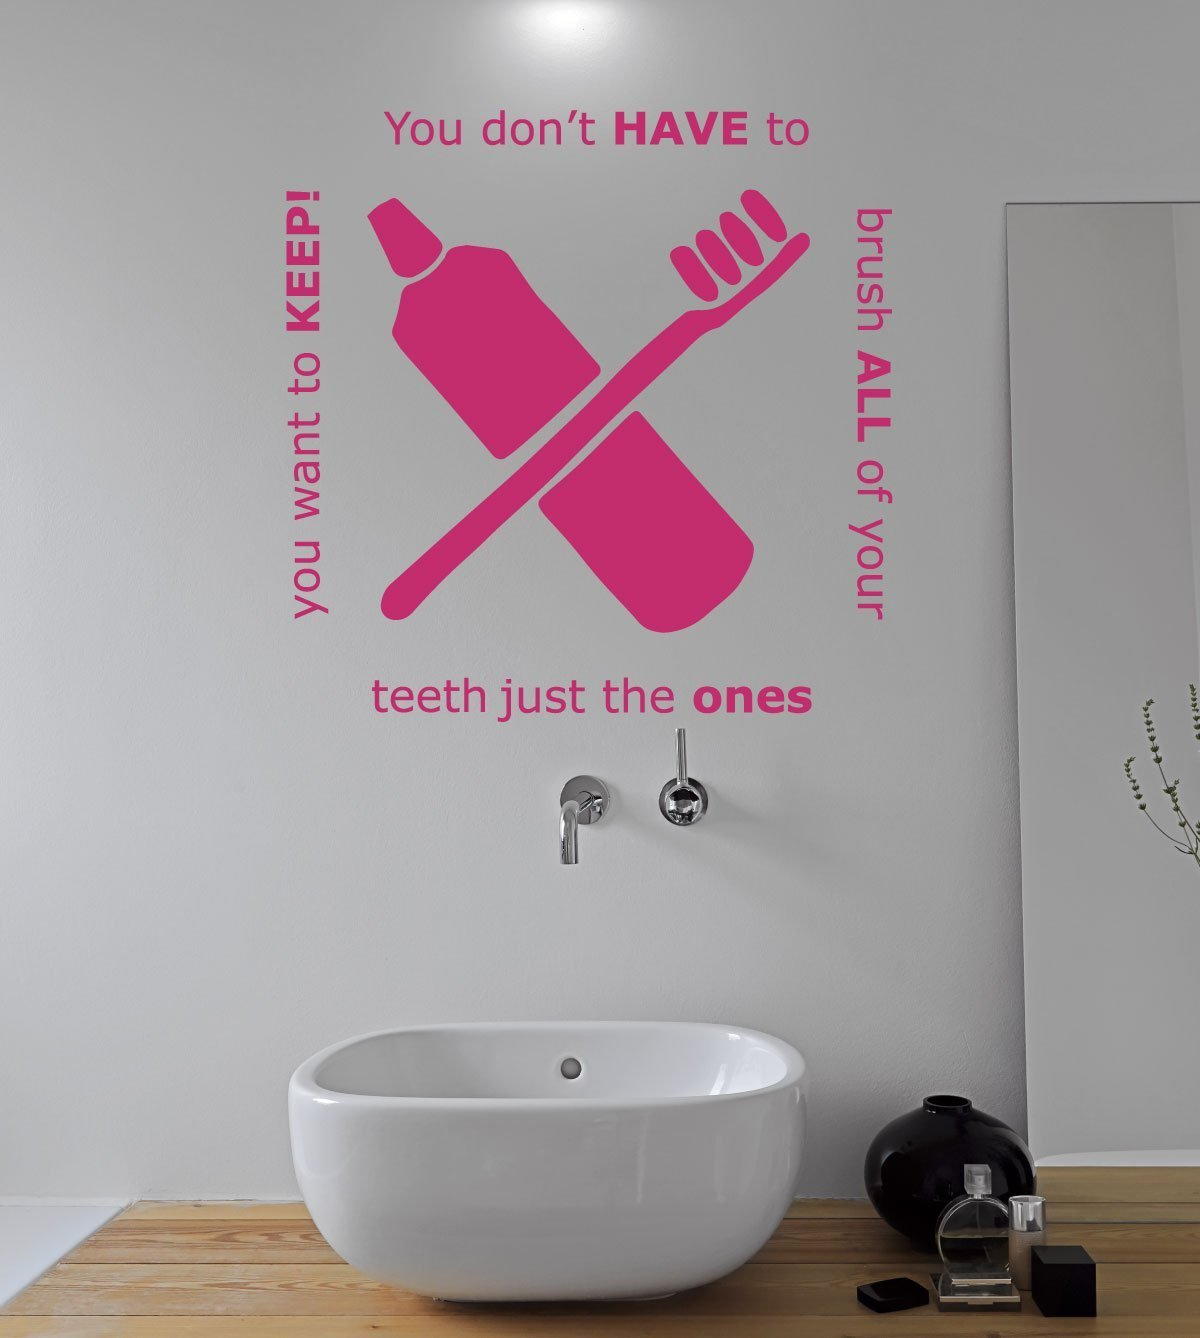 Amazoncom Bathroom Decals For Wall You Dont Have To Brush All